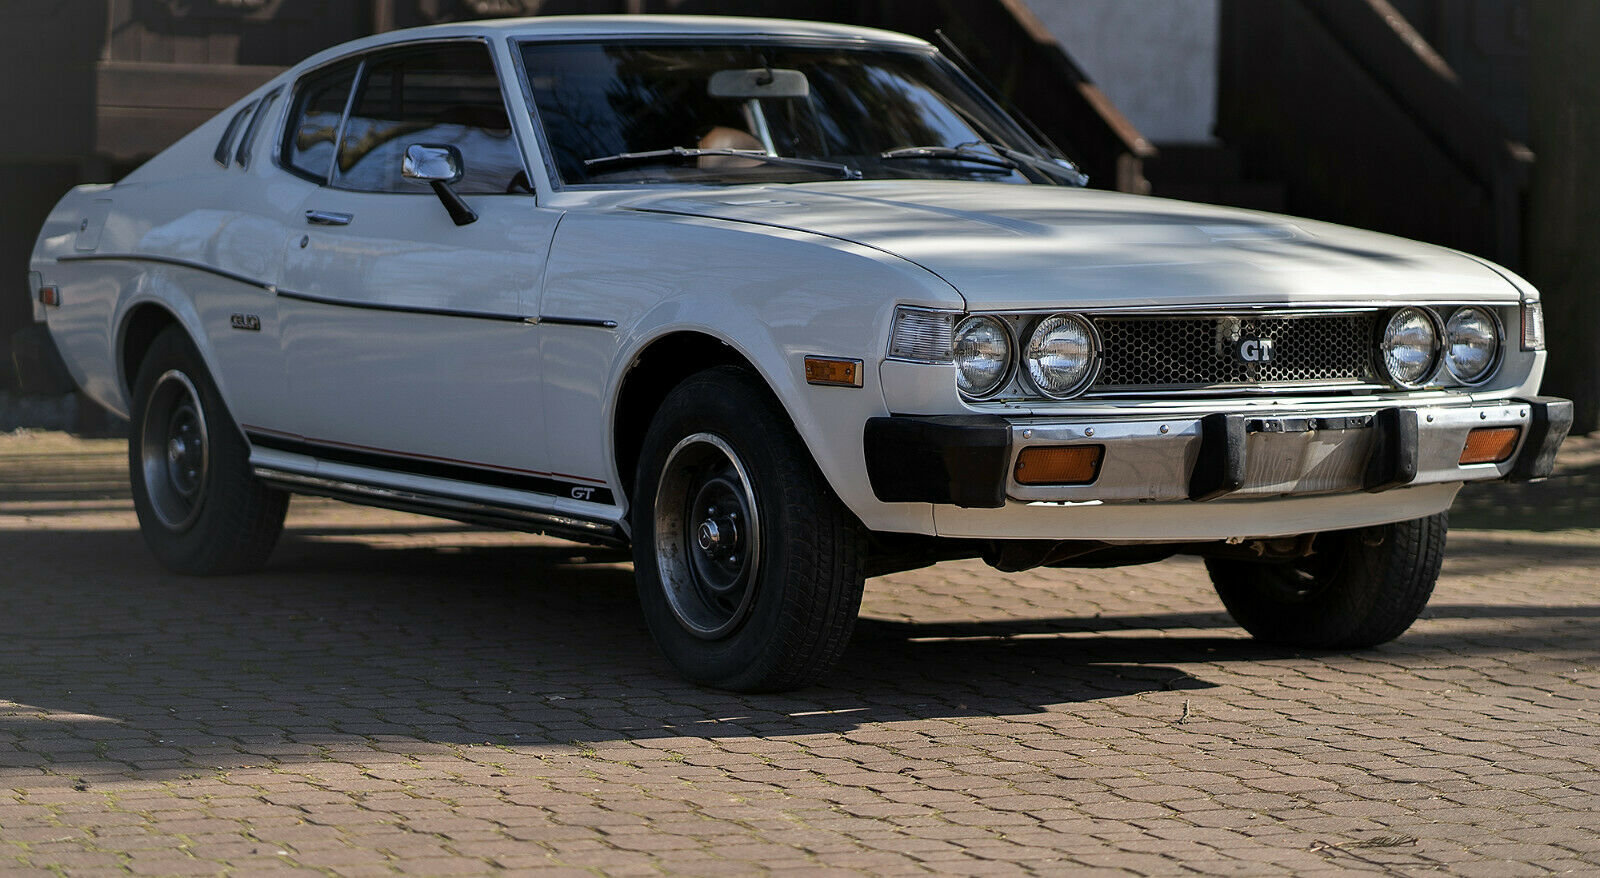 1977 Toyota celica gt ra29 perfect condition For Sale (picture 1 of 6)